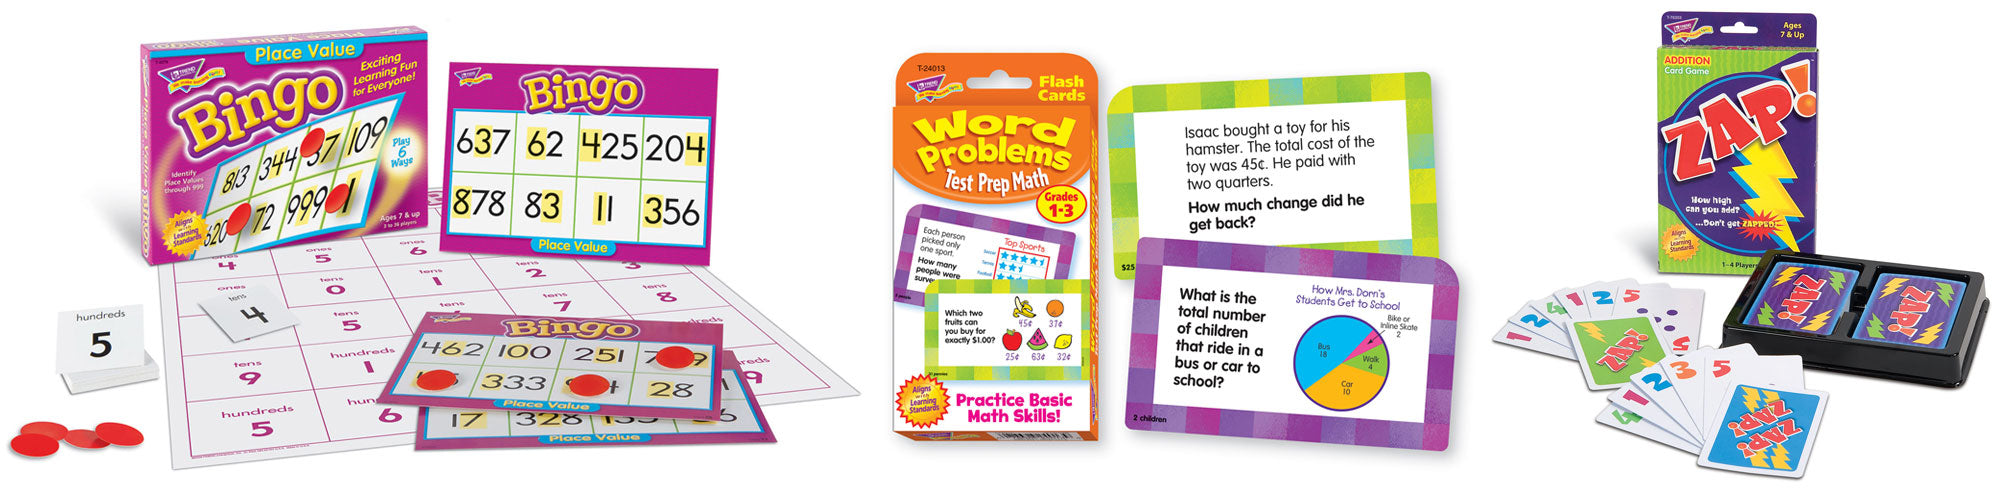 Products for 2nd grade math skills practice